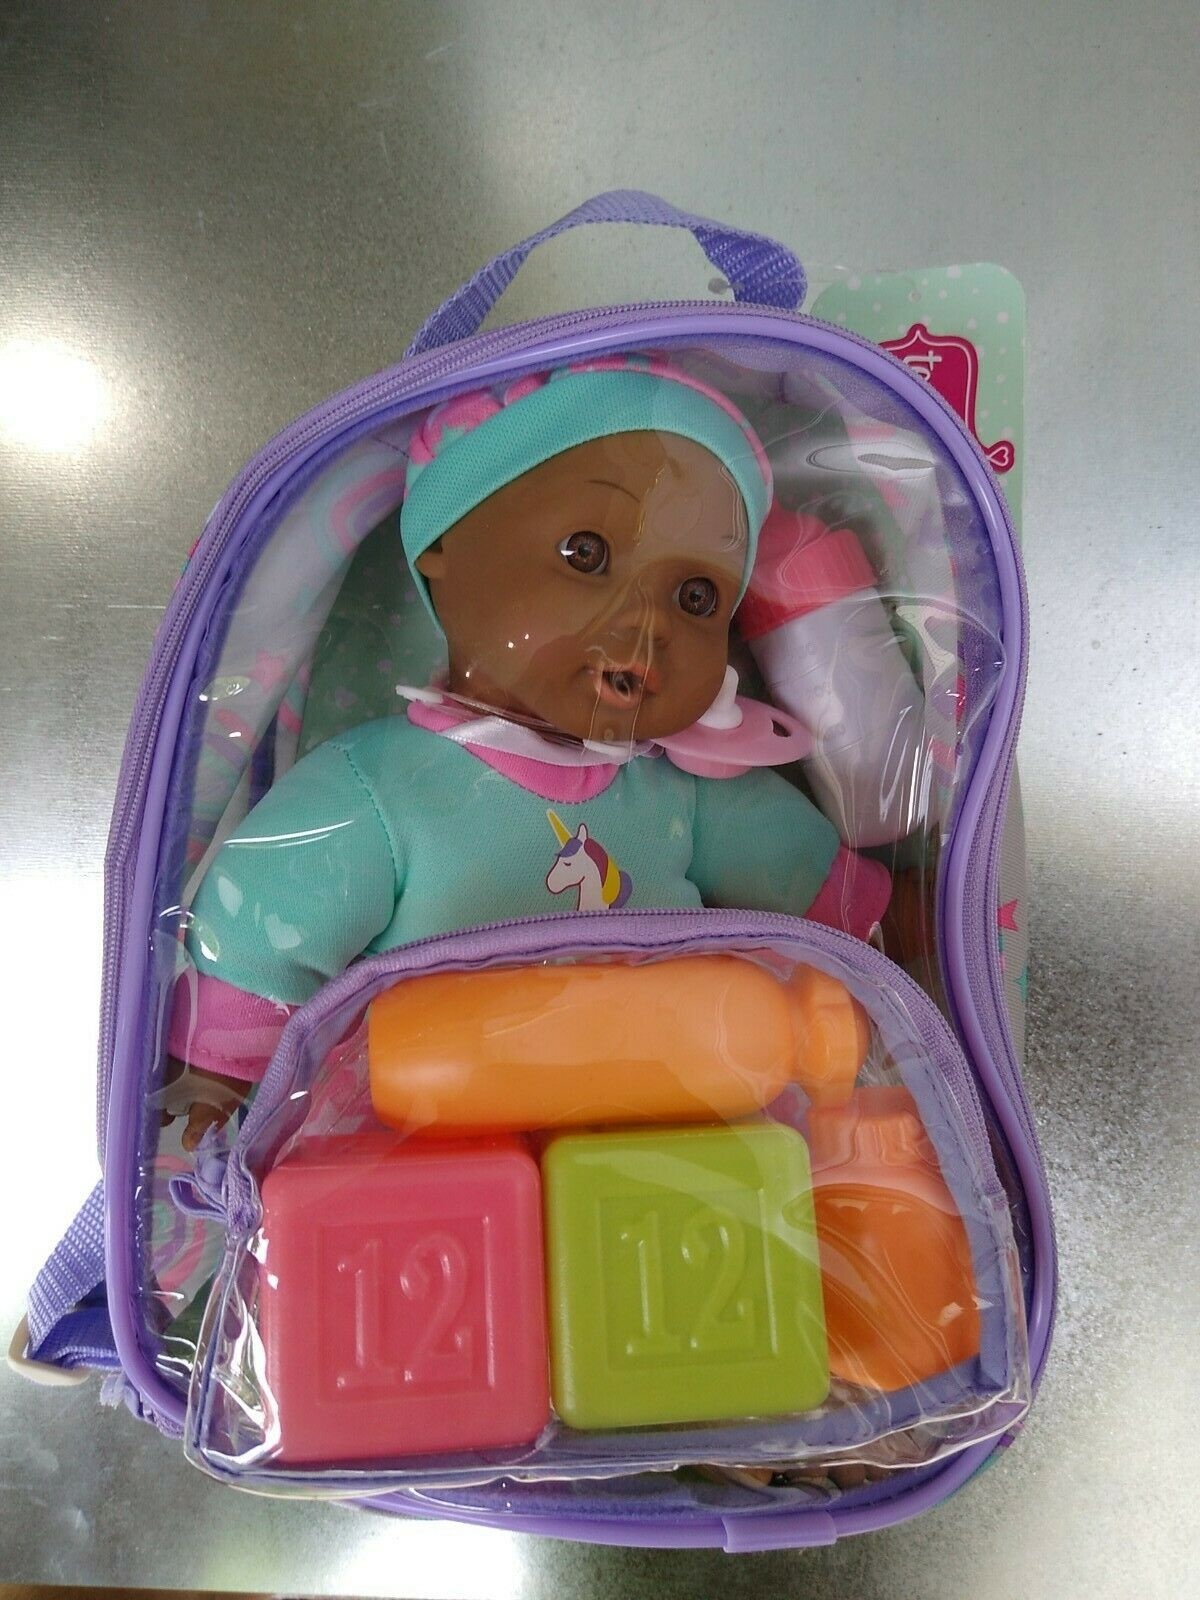 Backpack Baby with accessories